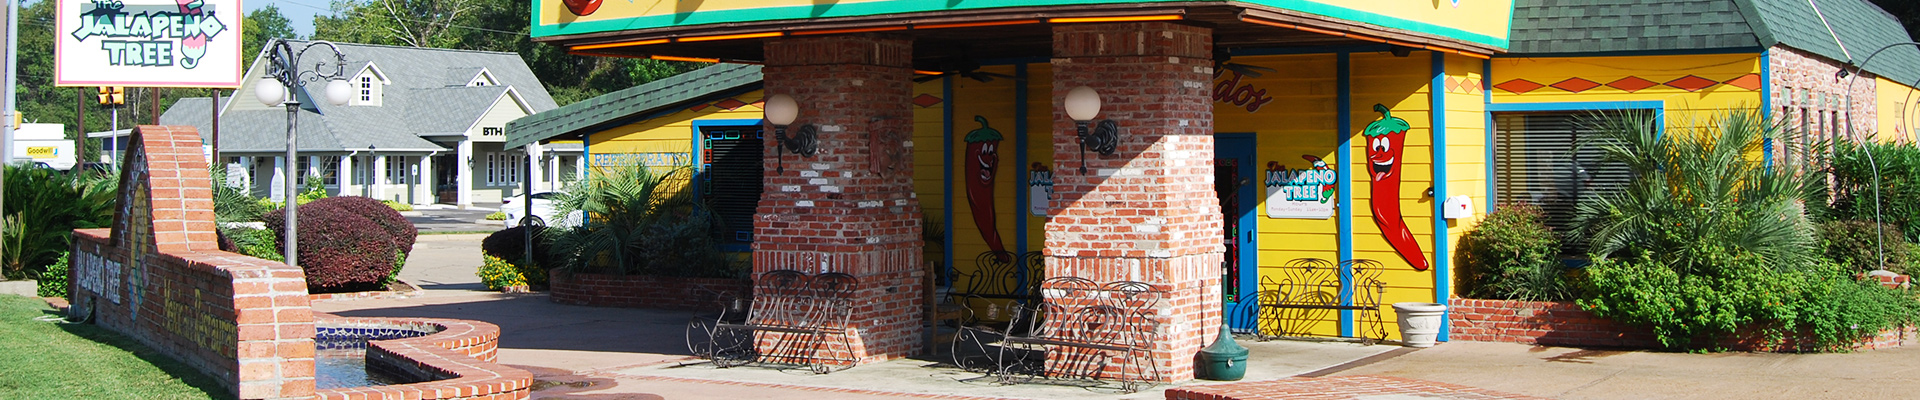 Exterior look of The Jalapeno Tree Mexican restaurant in Carthage, Texas